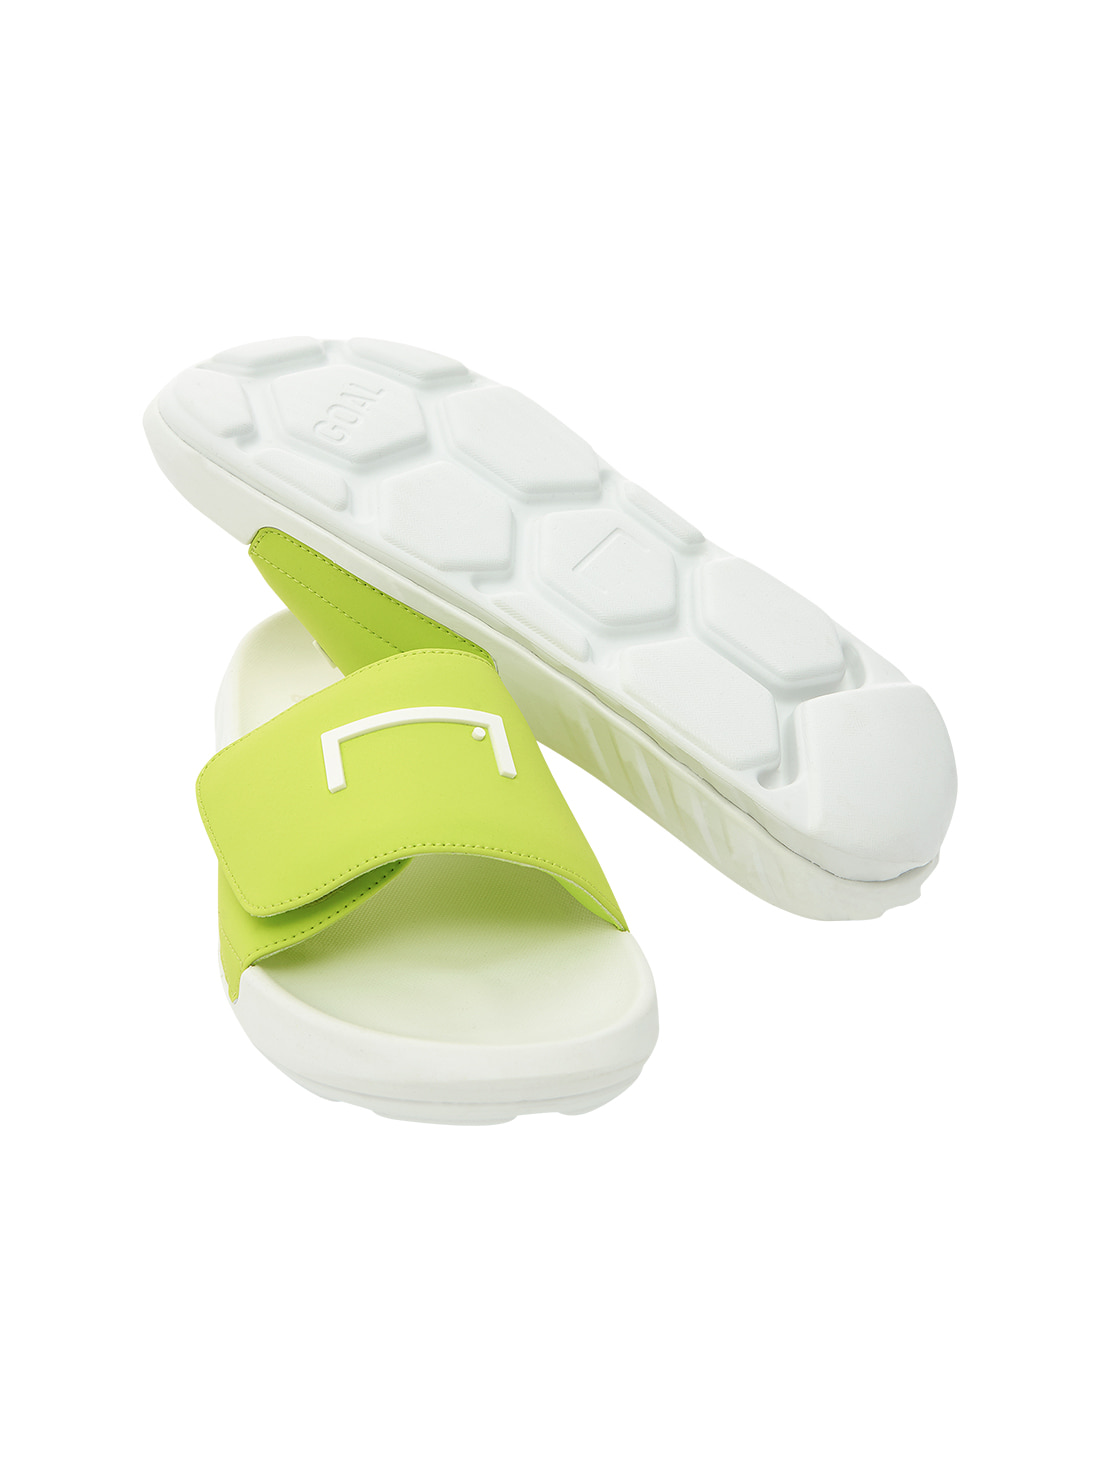 GOALSTUDIO GRAB-ITY BALANCE SLIDE - LIME